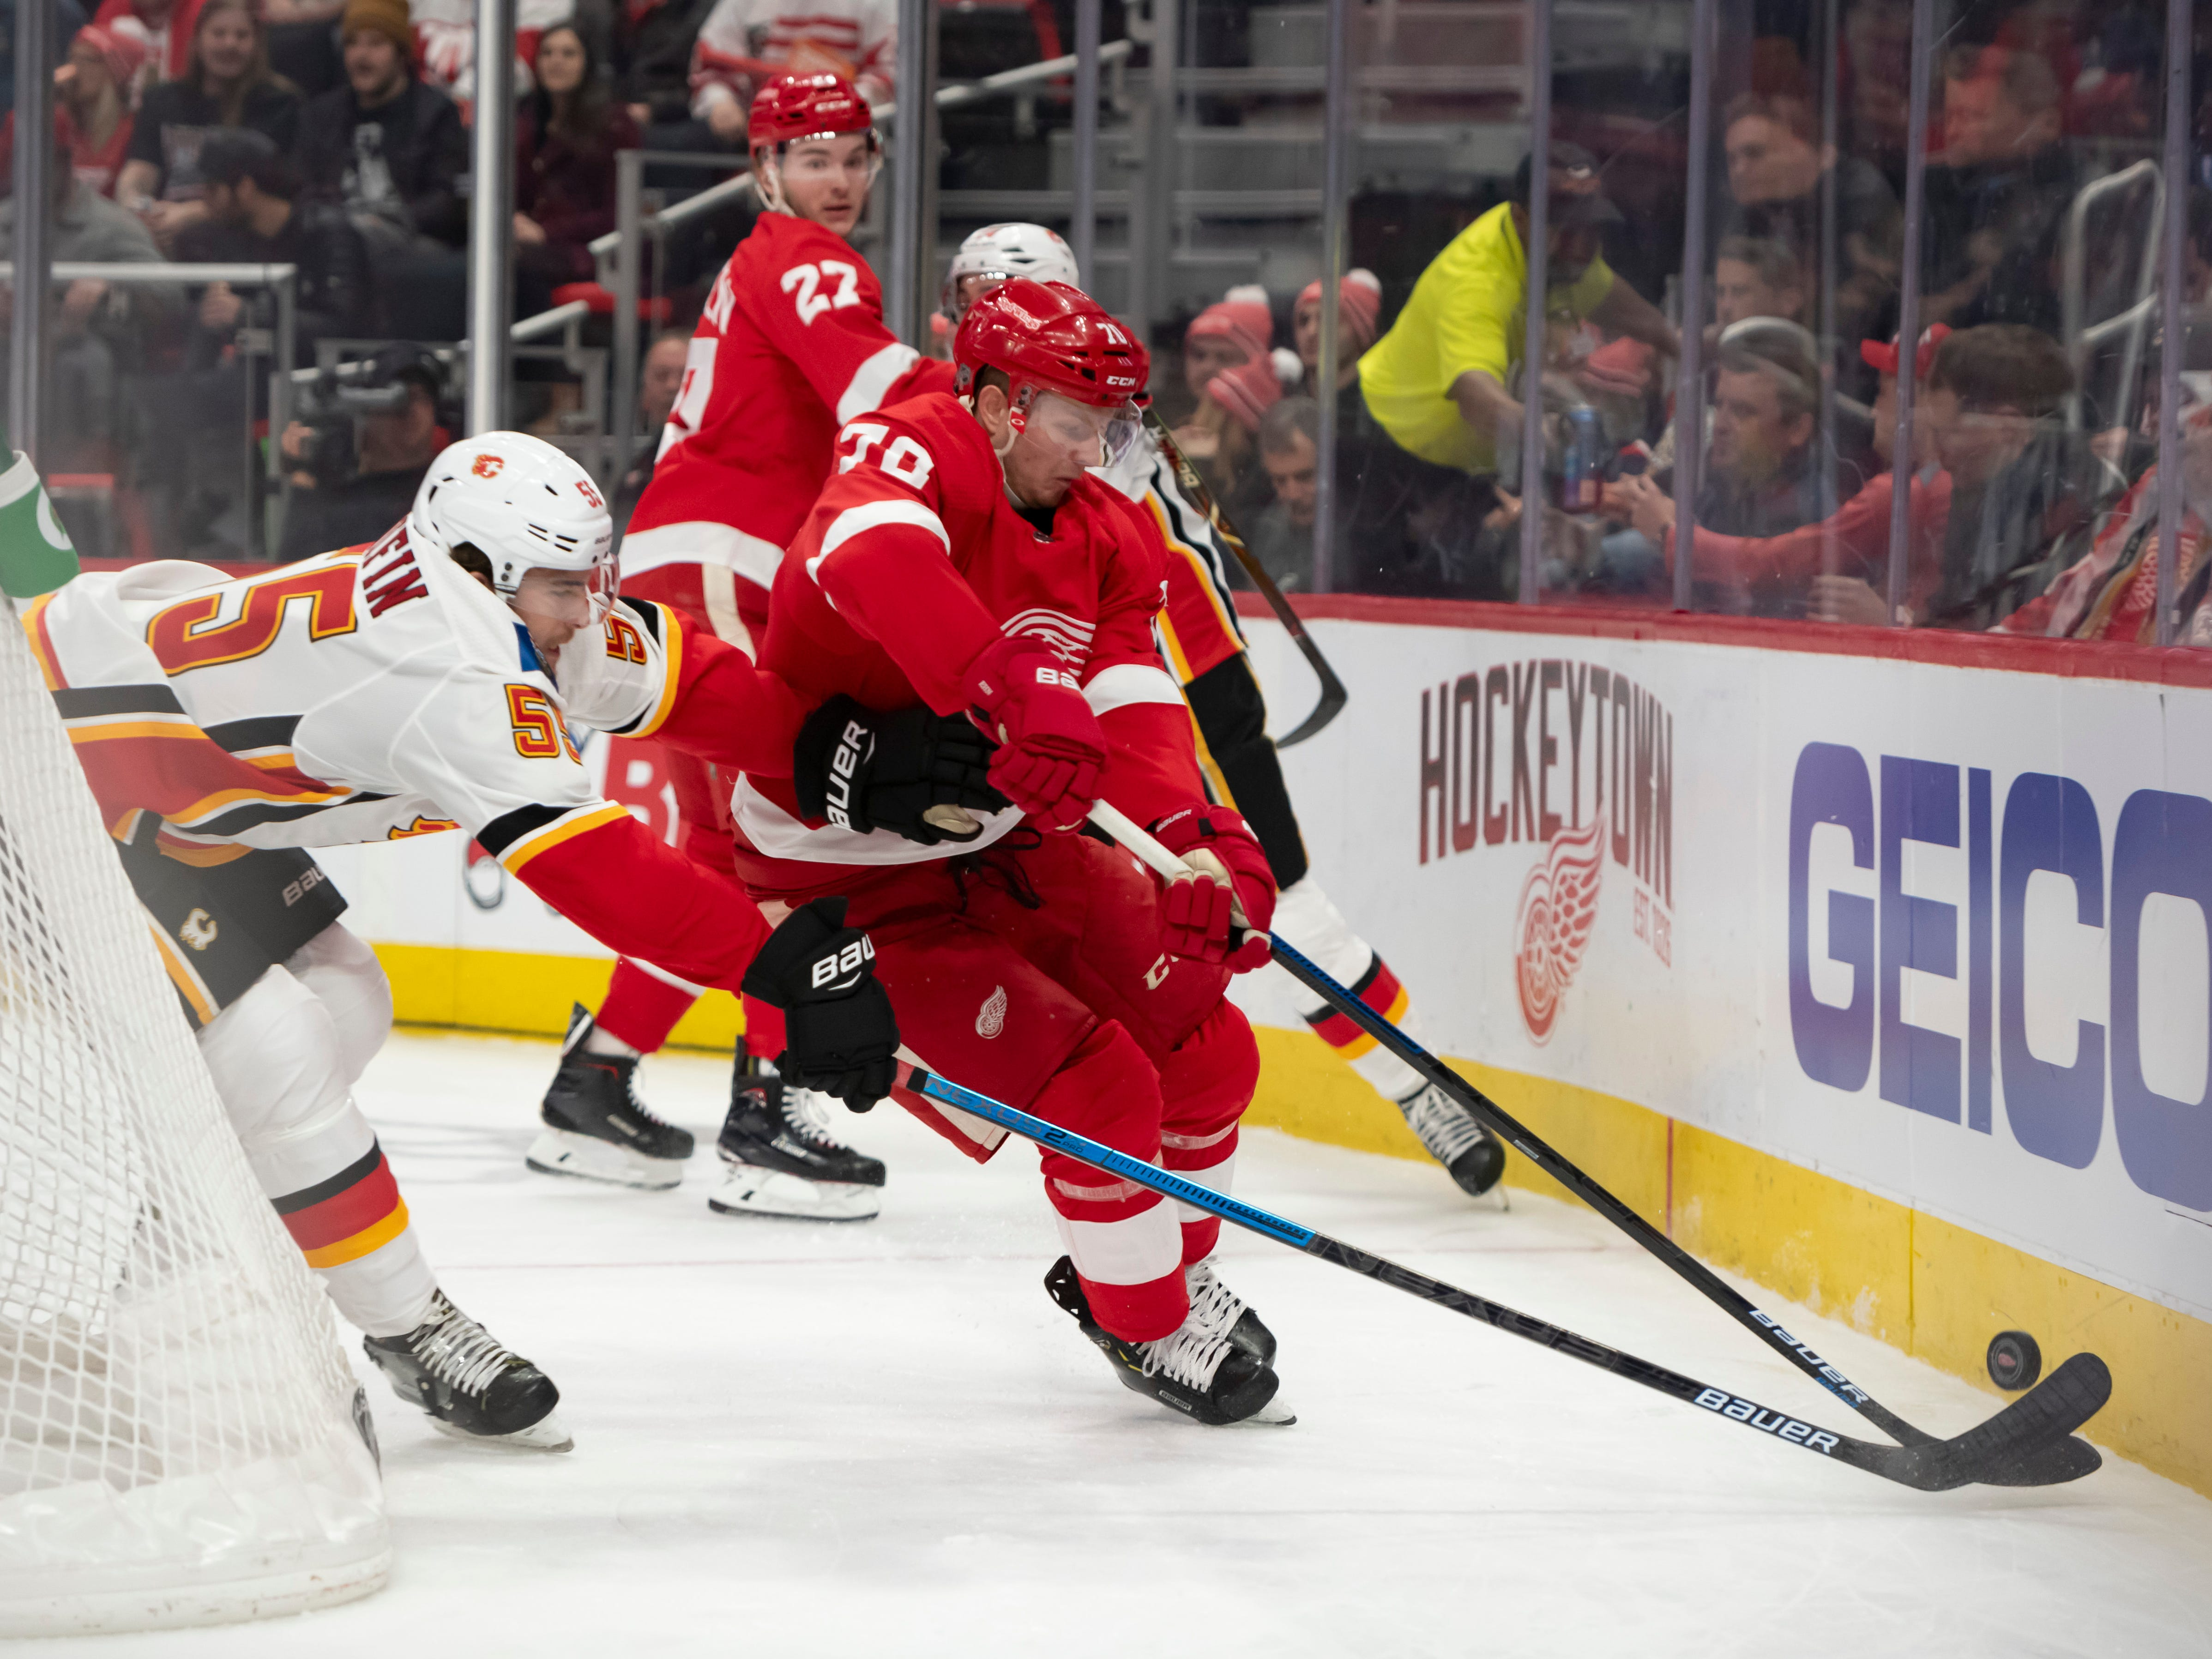 Detroit center Christoffer Ehn and Calgary defenseman Noah Hanifin battle for the puck in the first period.